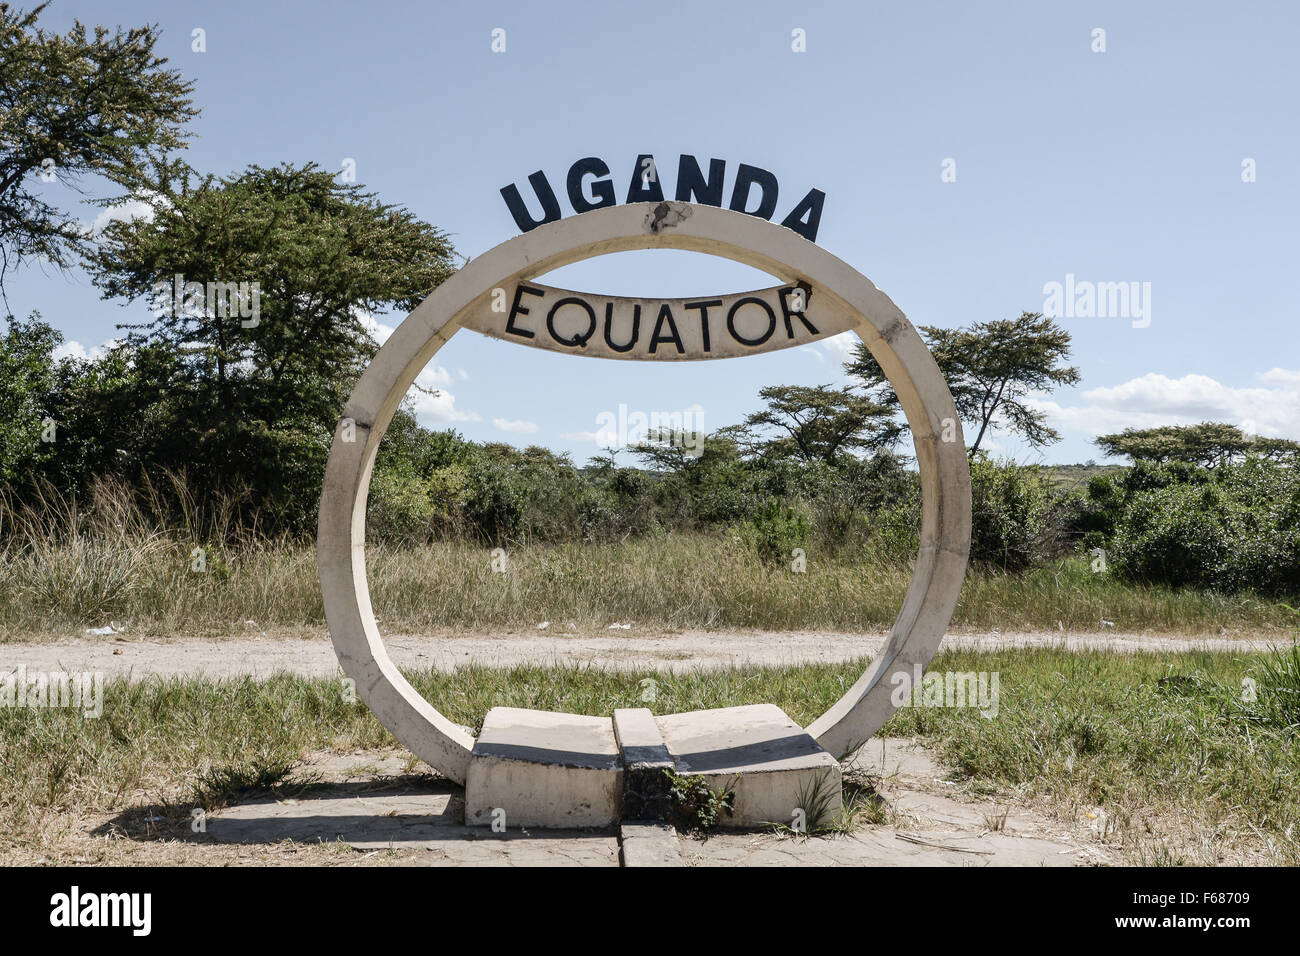 The sign of the equator in Uganda. - Stock Image